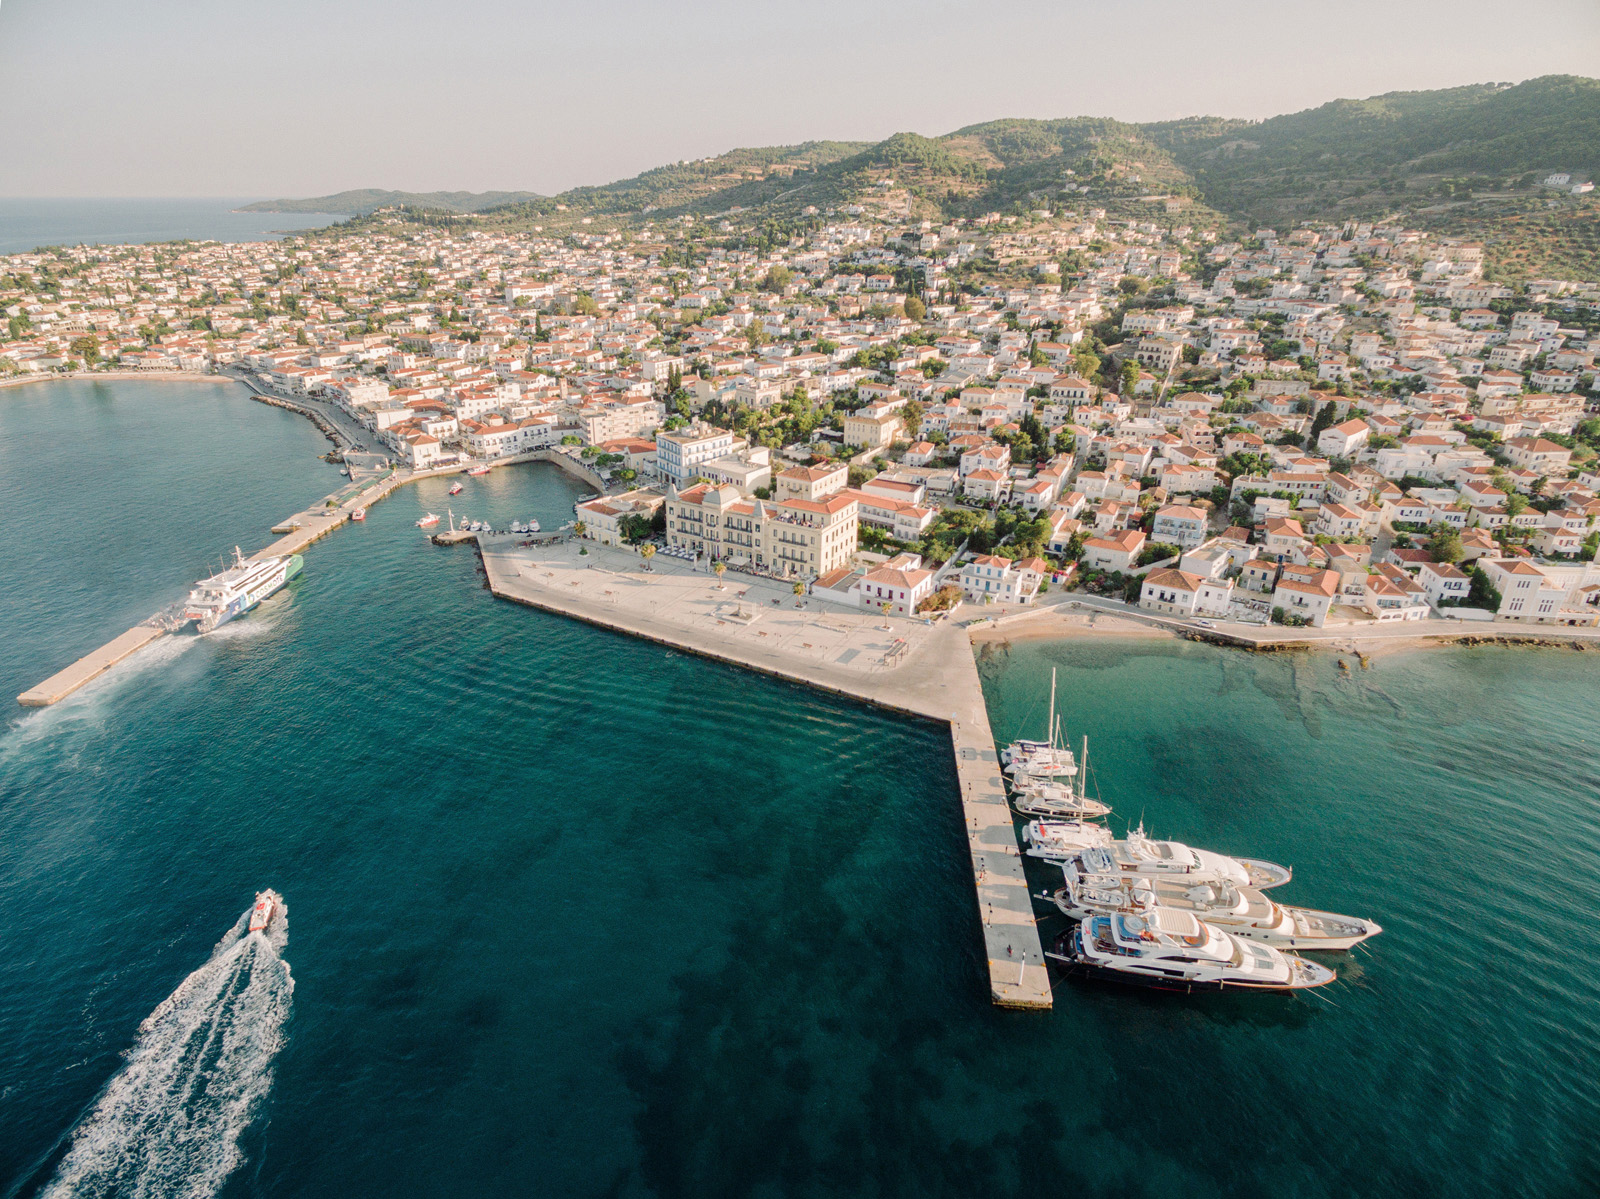 Spetses island drone image for a wedding